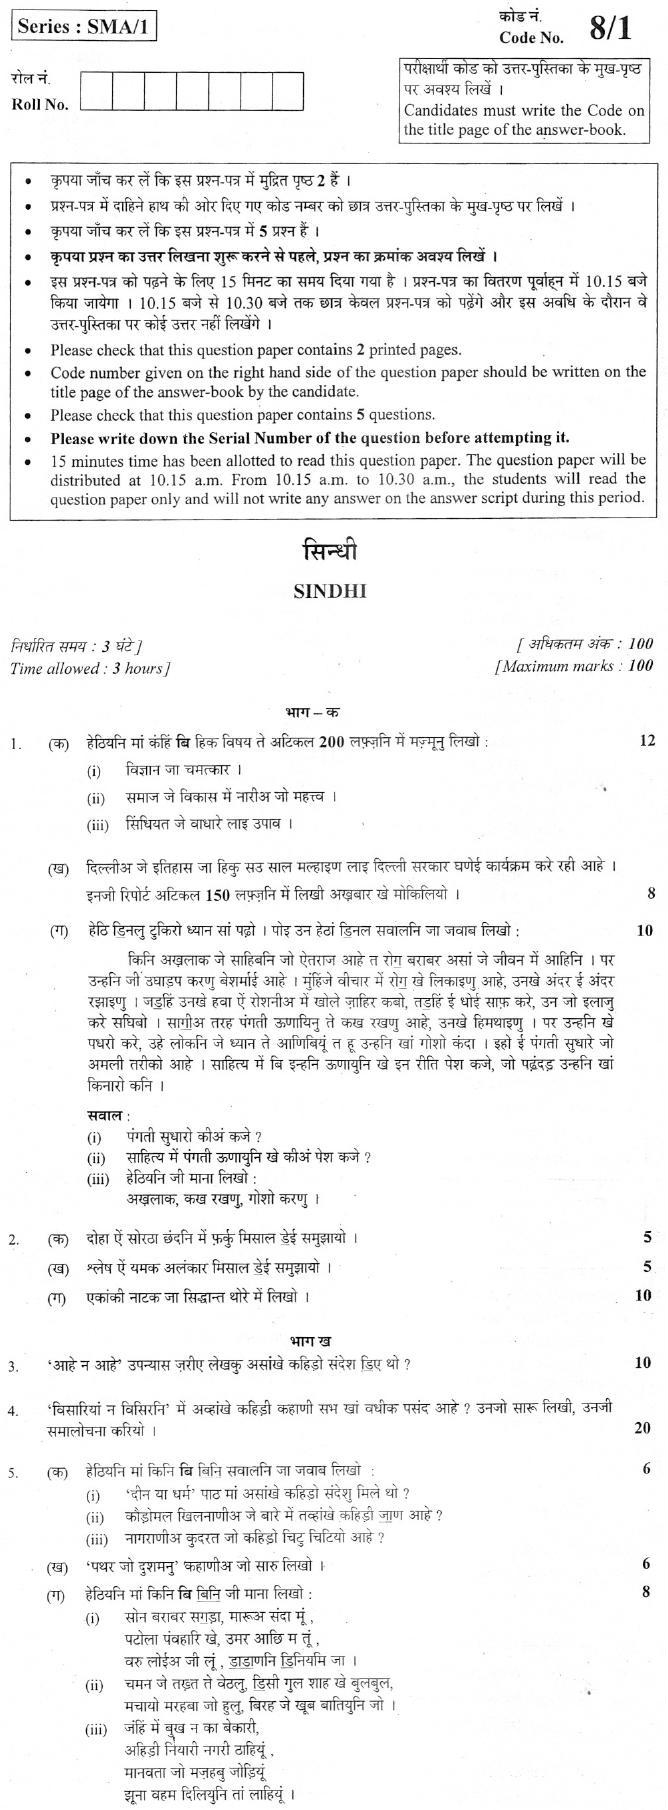 CBSE Class XII Previous Year Question Paper 2012 Sindhi